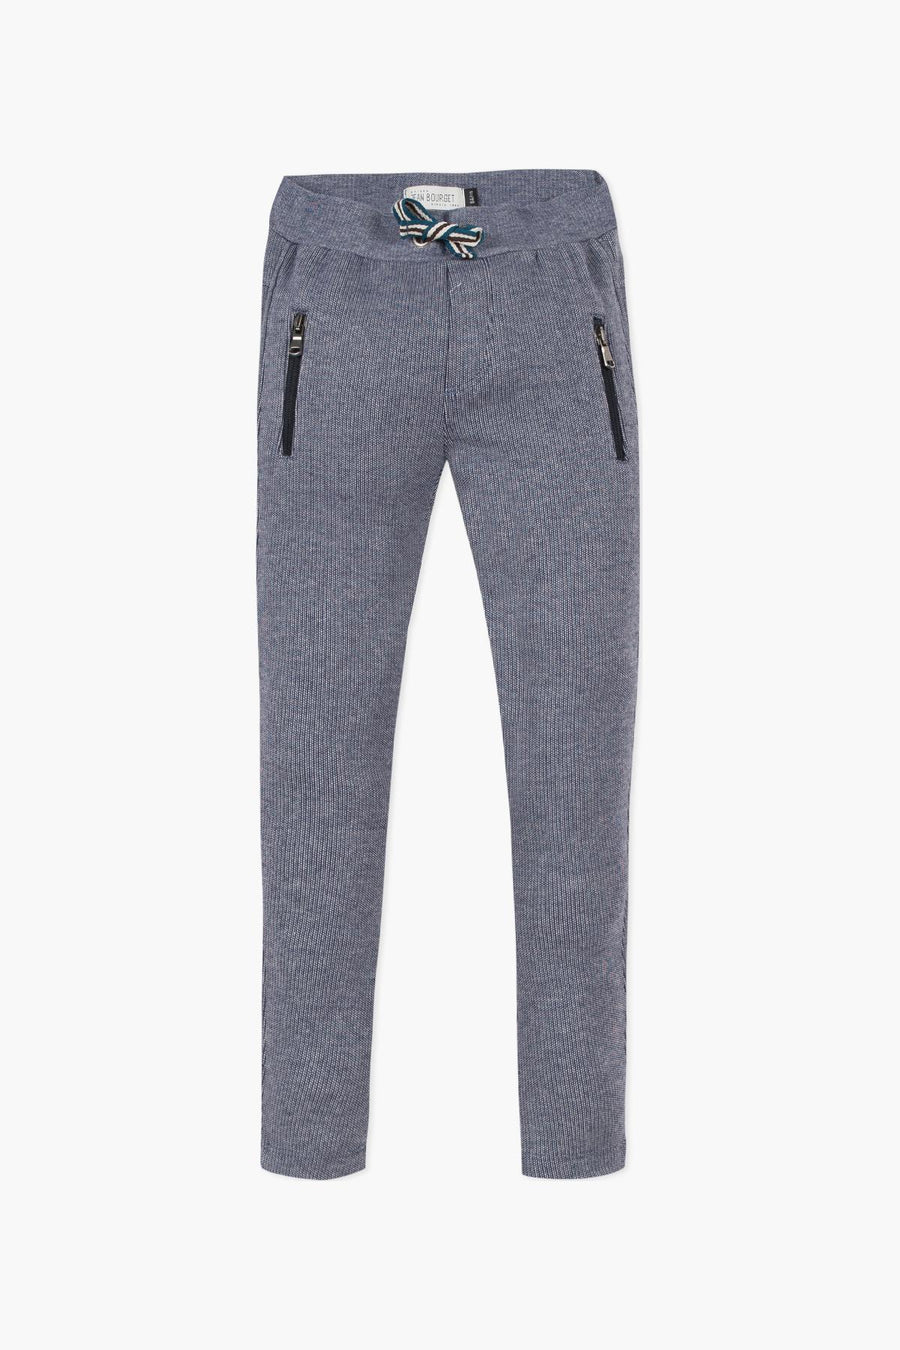 Jean Bourget Grey Jogger Pants